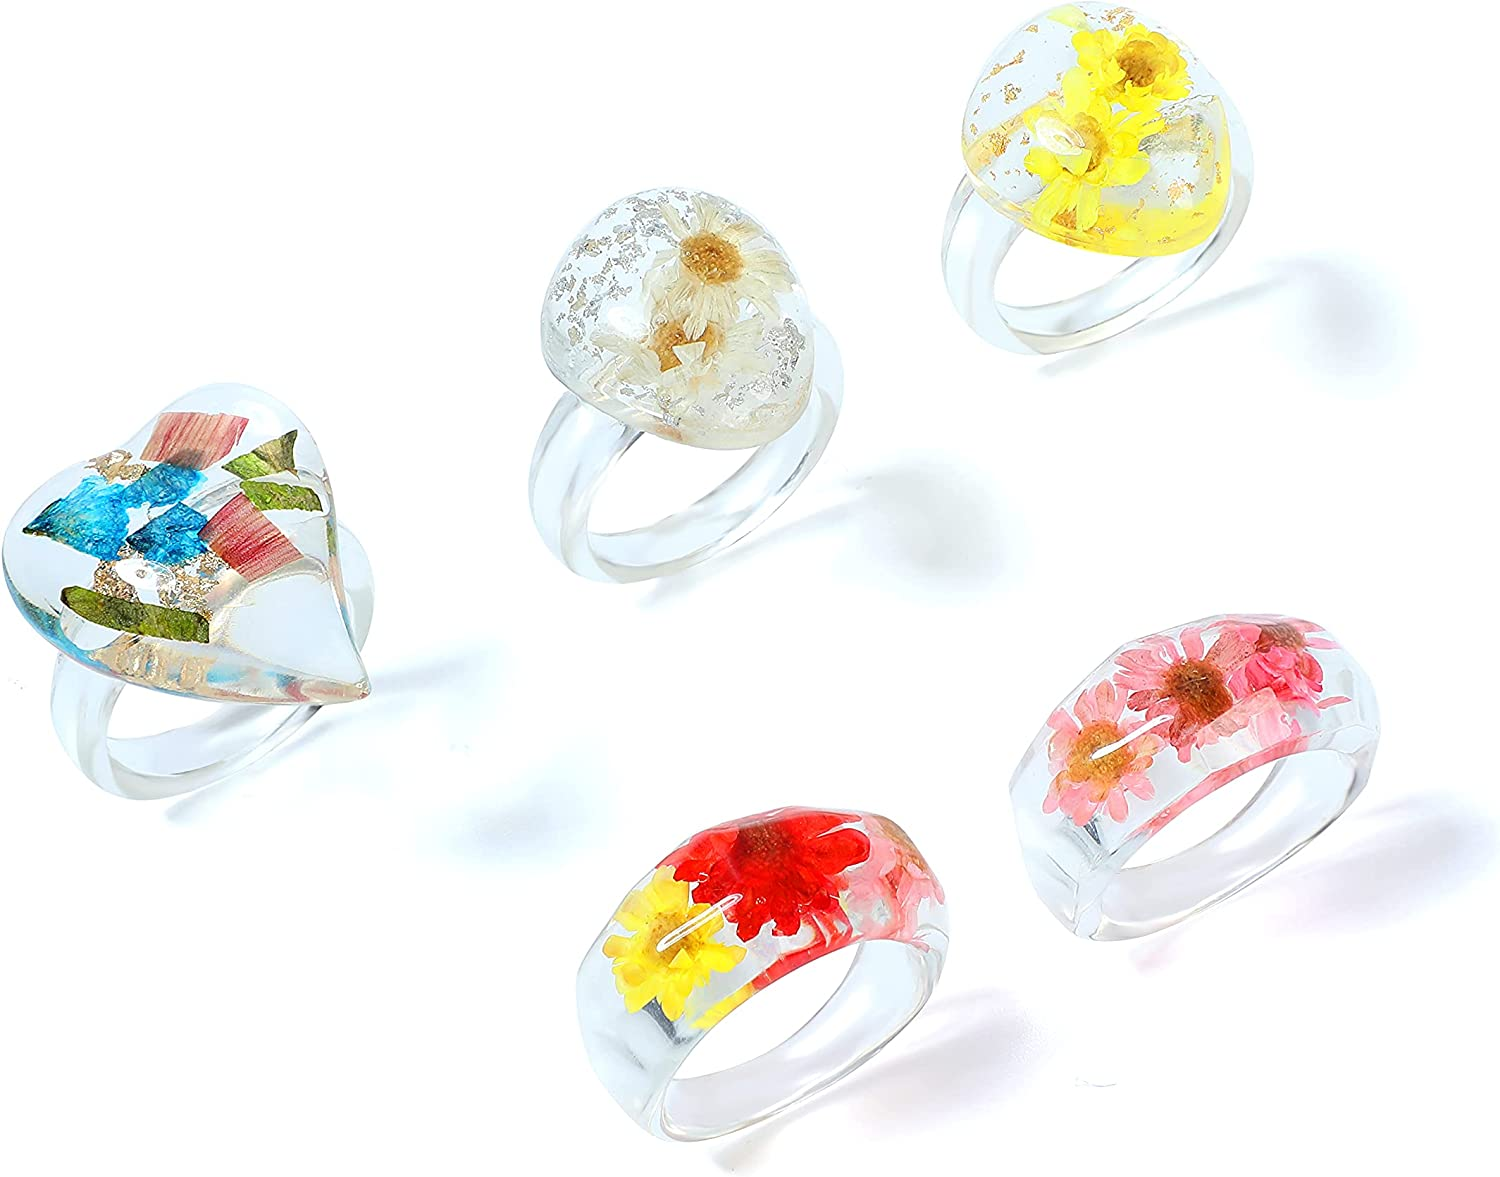 Buleens 10pcs Resin Rings Set for Women Cute Flower Anillos Chunky Acrylic Vintage Plastic Finger Ring Jewelry Stackable Colorful Fruit Clear Fun Enamel Dainty Daisy Size 6 8 Square Band